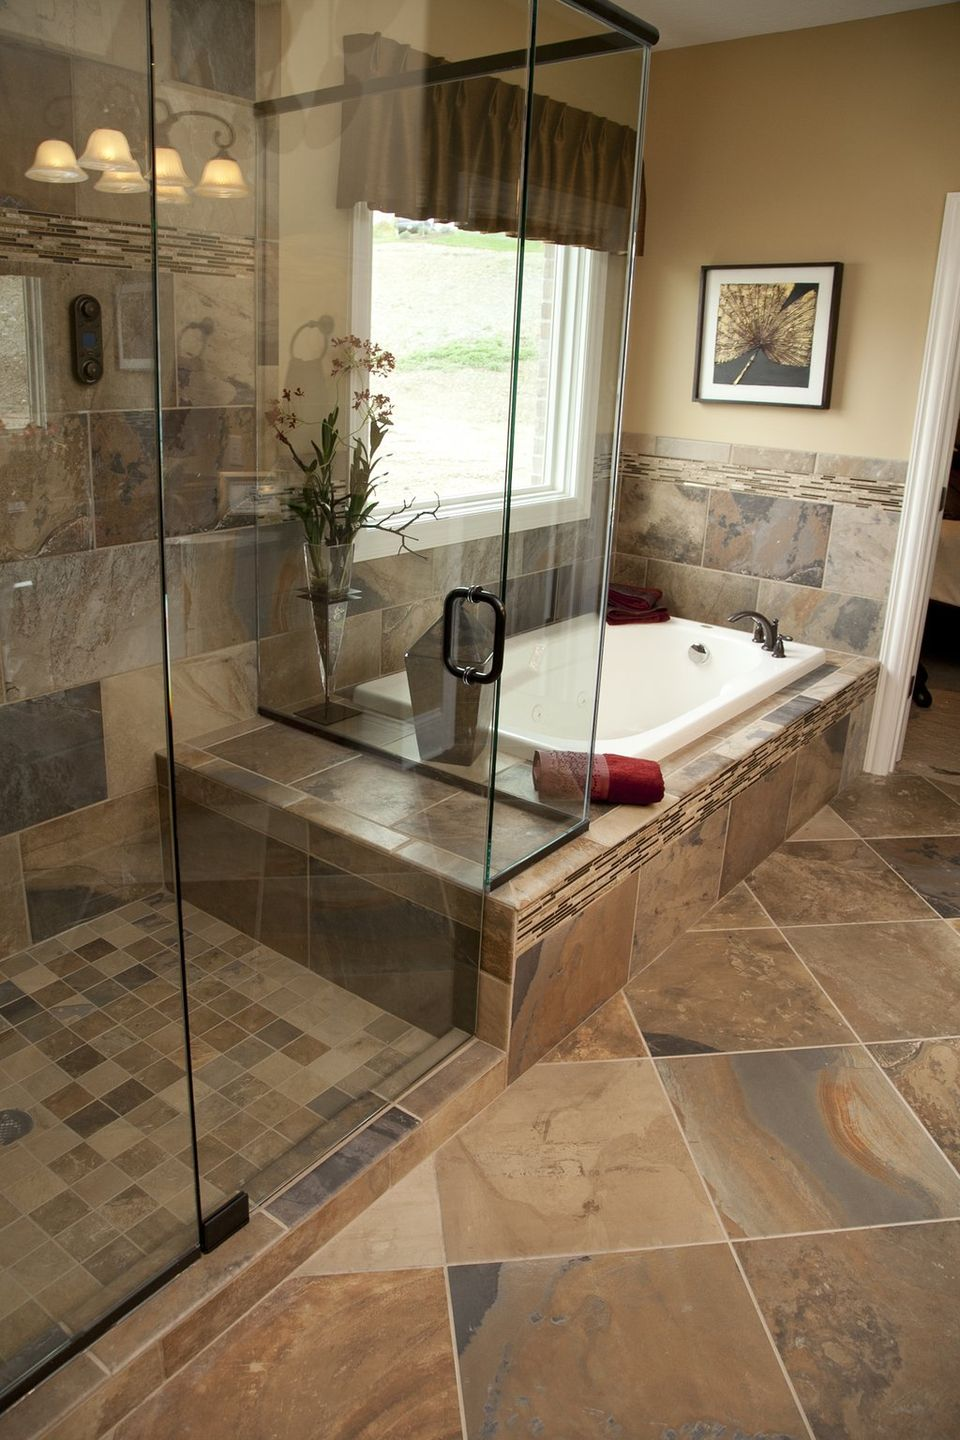 34 stunning pictures and ideas of natural stone bathroom ...